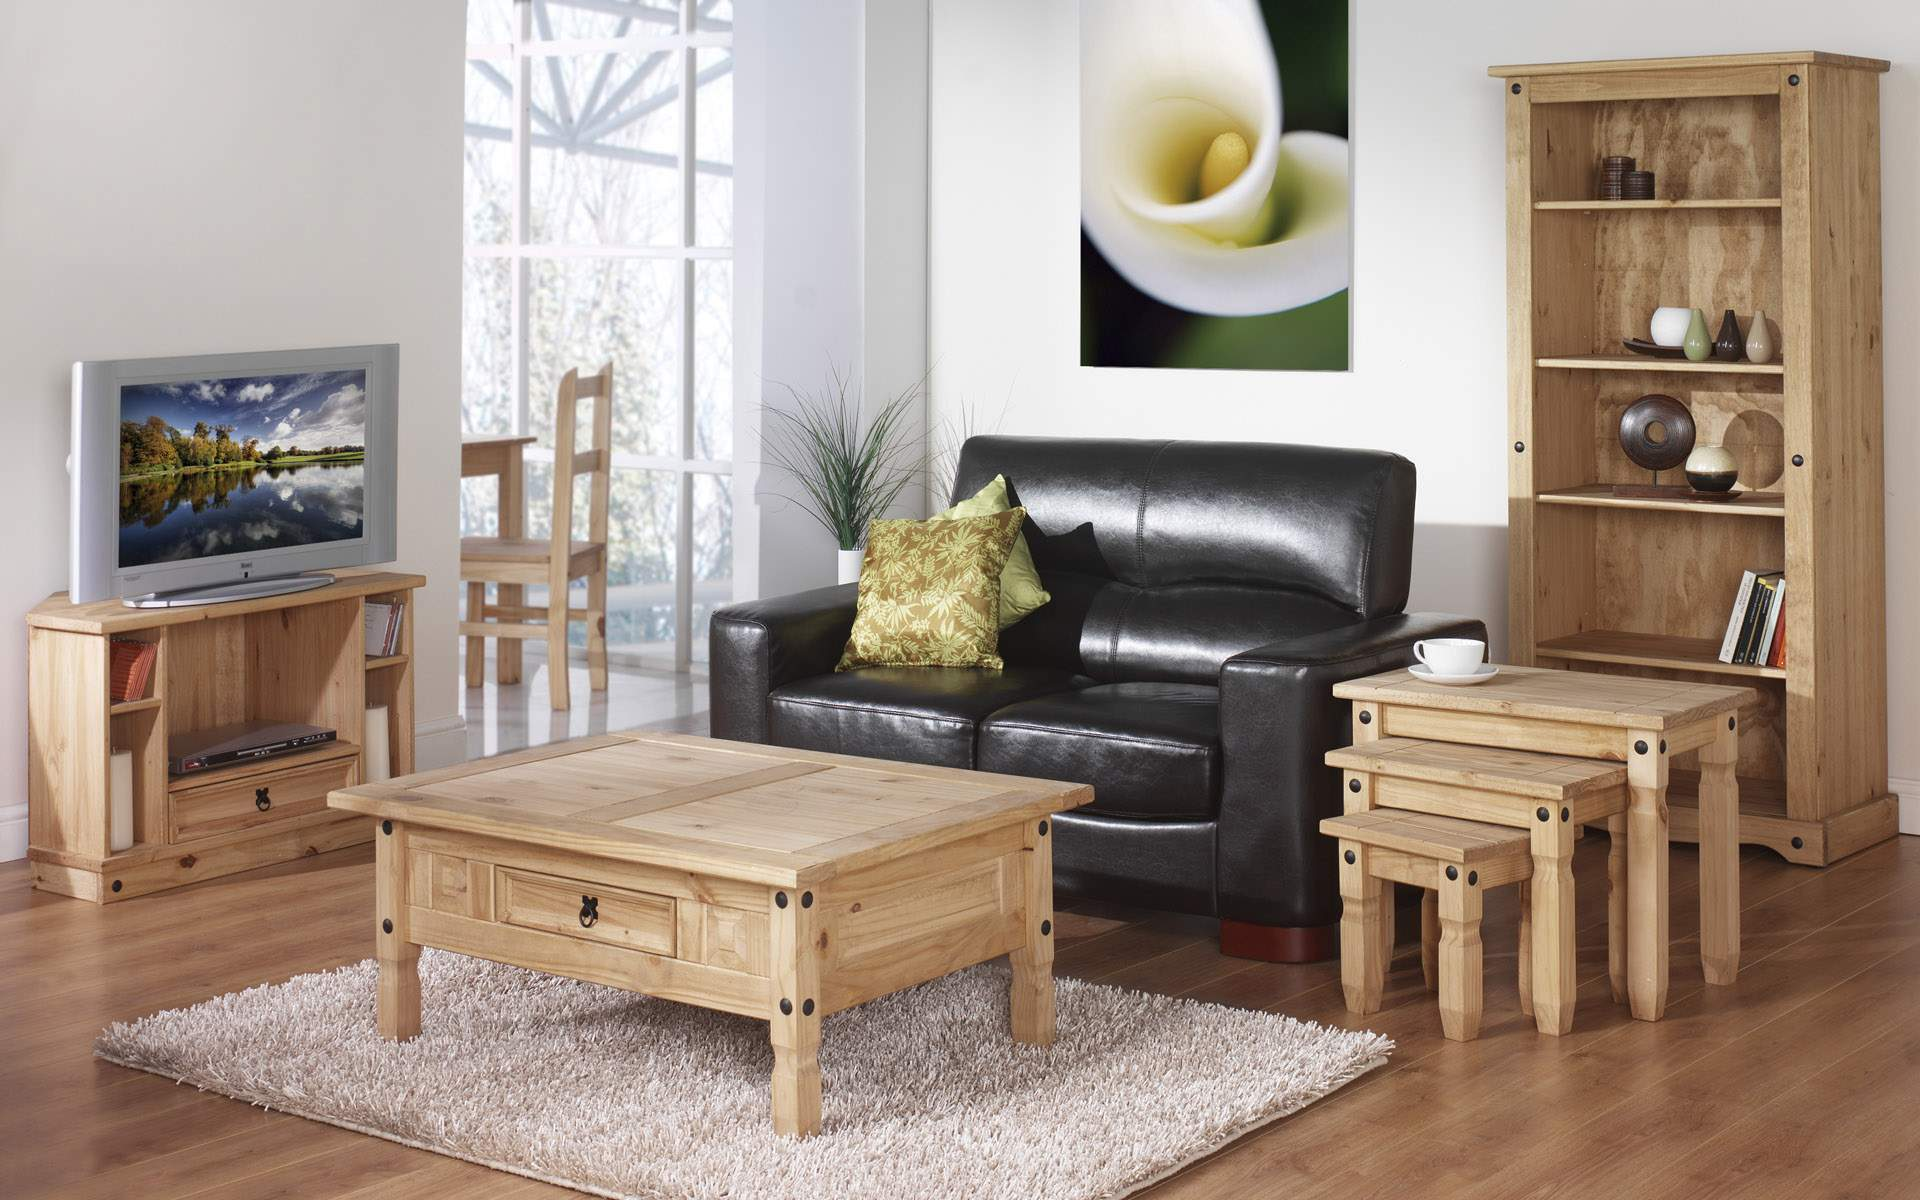 Image of: Wooden Living Room Furniture